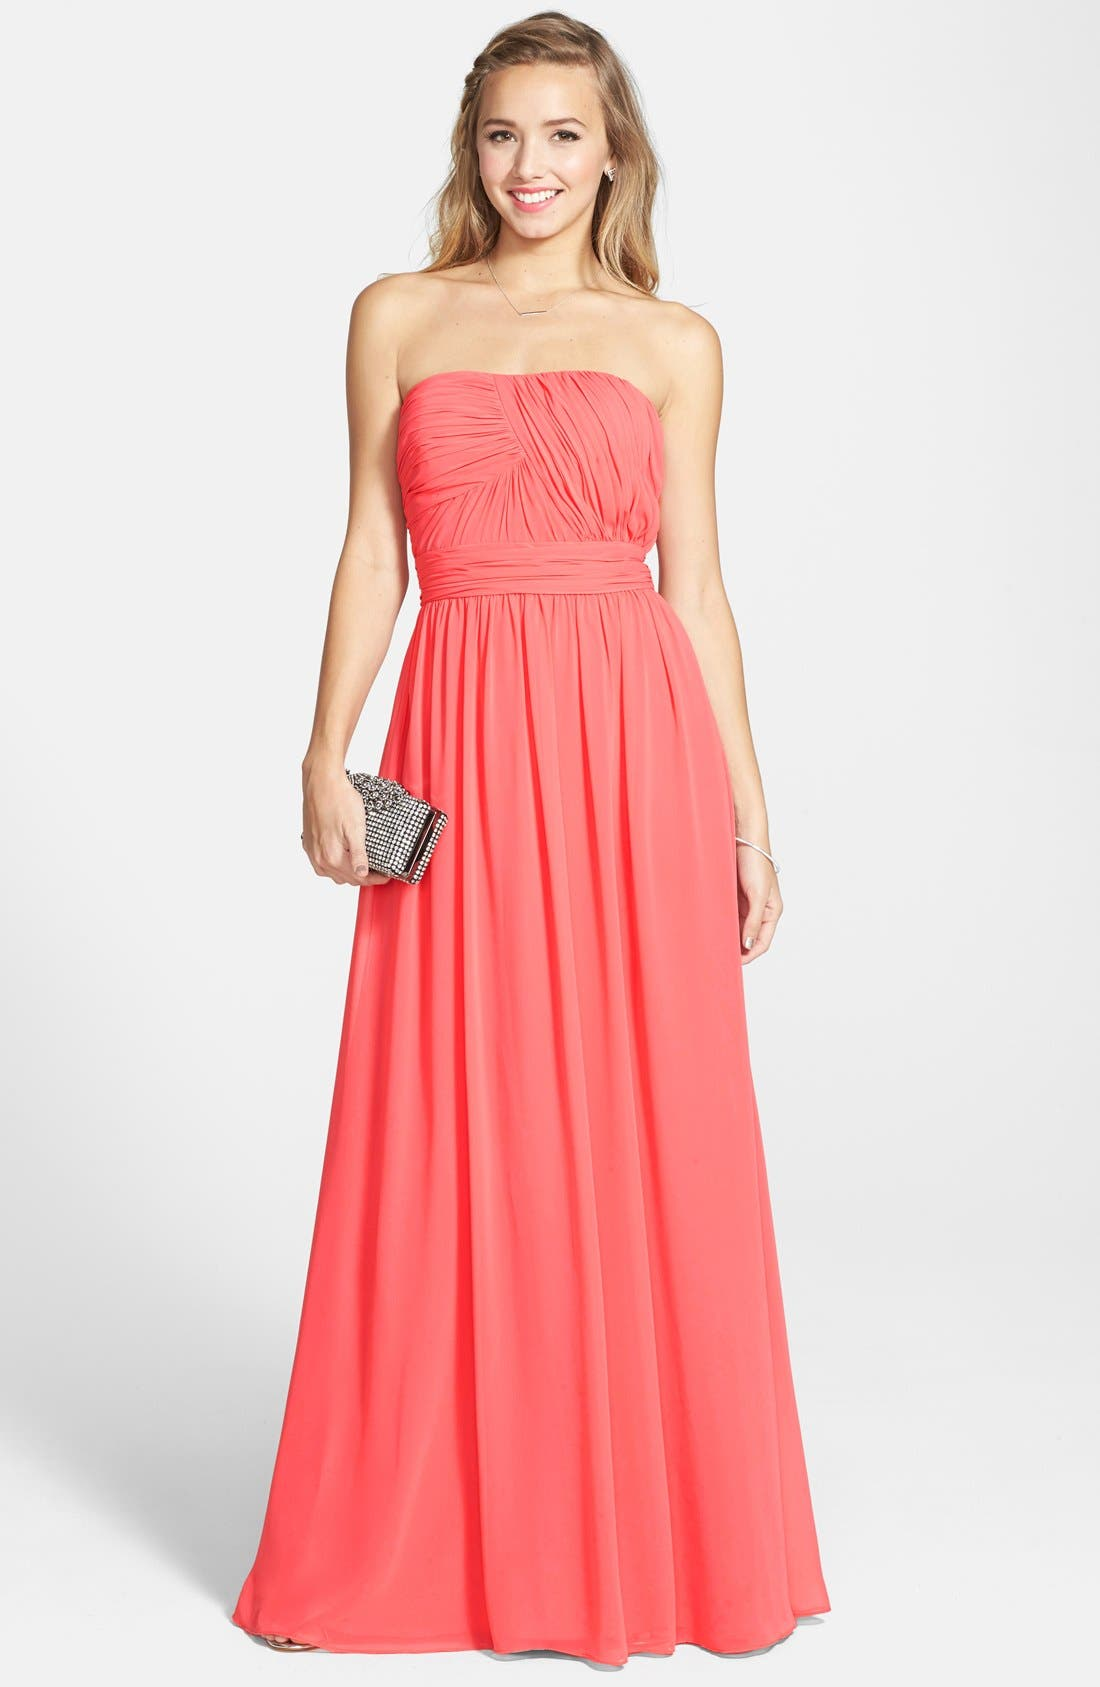 HAILEY BY ADRIANNA PAPELL Shirred Chiffon Strapless Gown, Main, color, 650